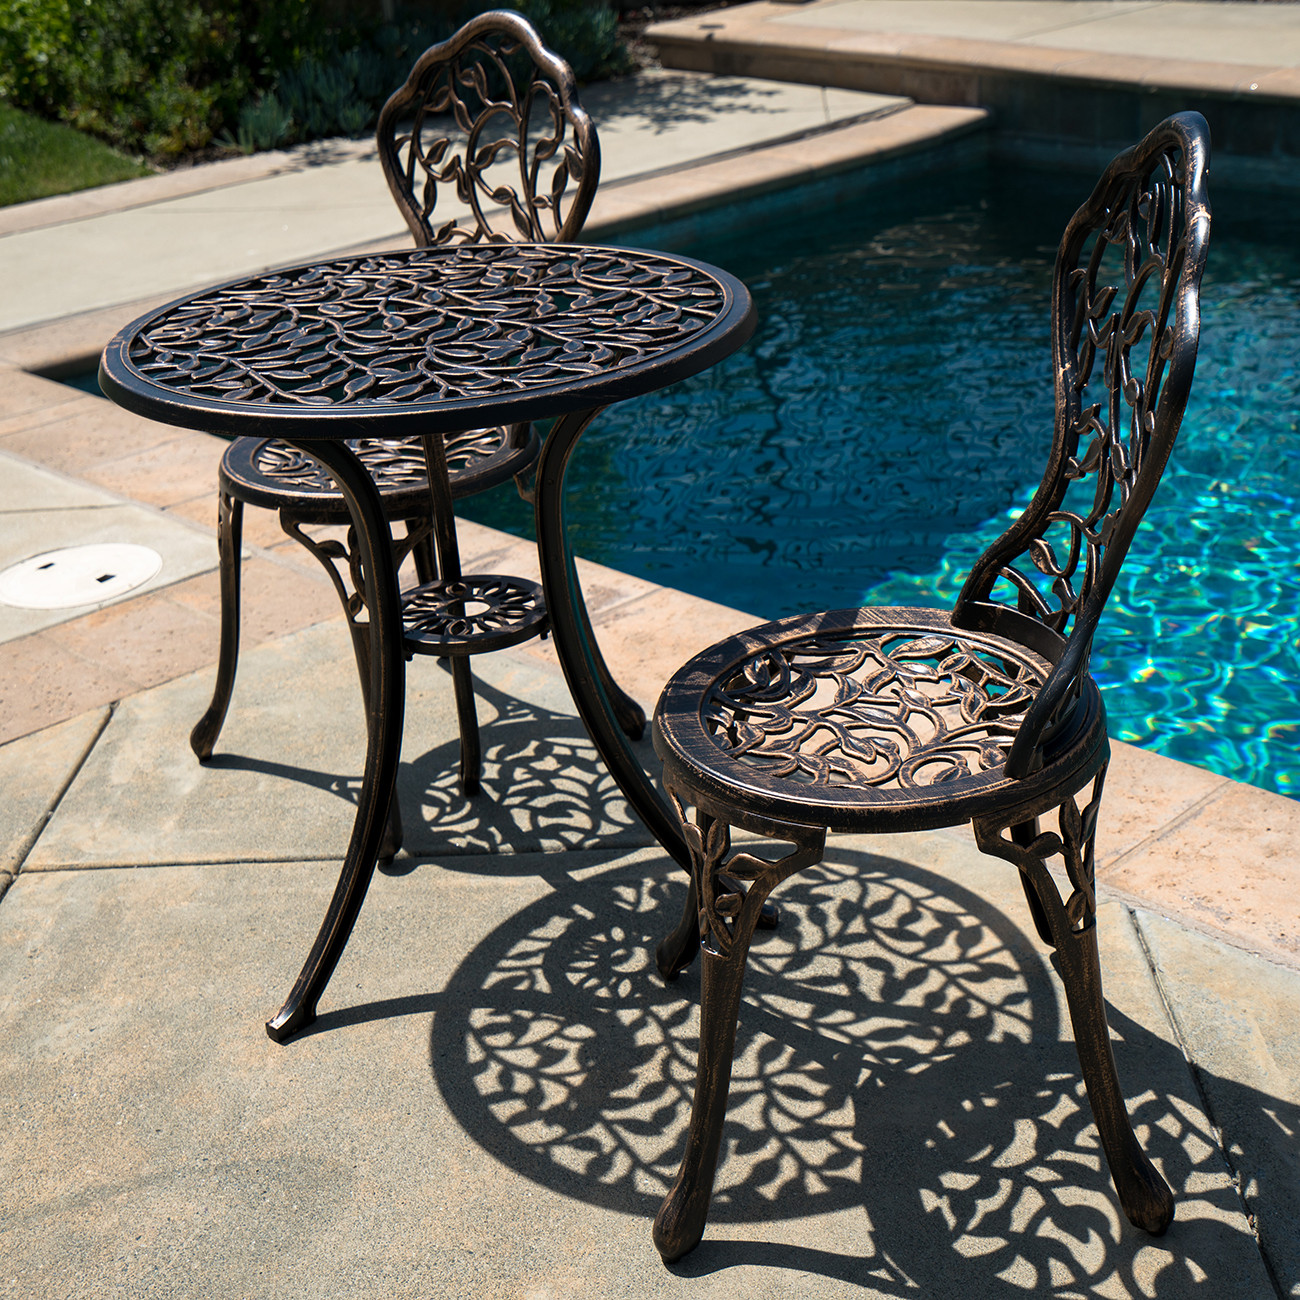 Best ideas about Cast Aluminum Patio Furniture . Save or Pin 3PC Bistro Set in Antique Outdoor Patio Furniture Leaf Now.